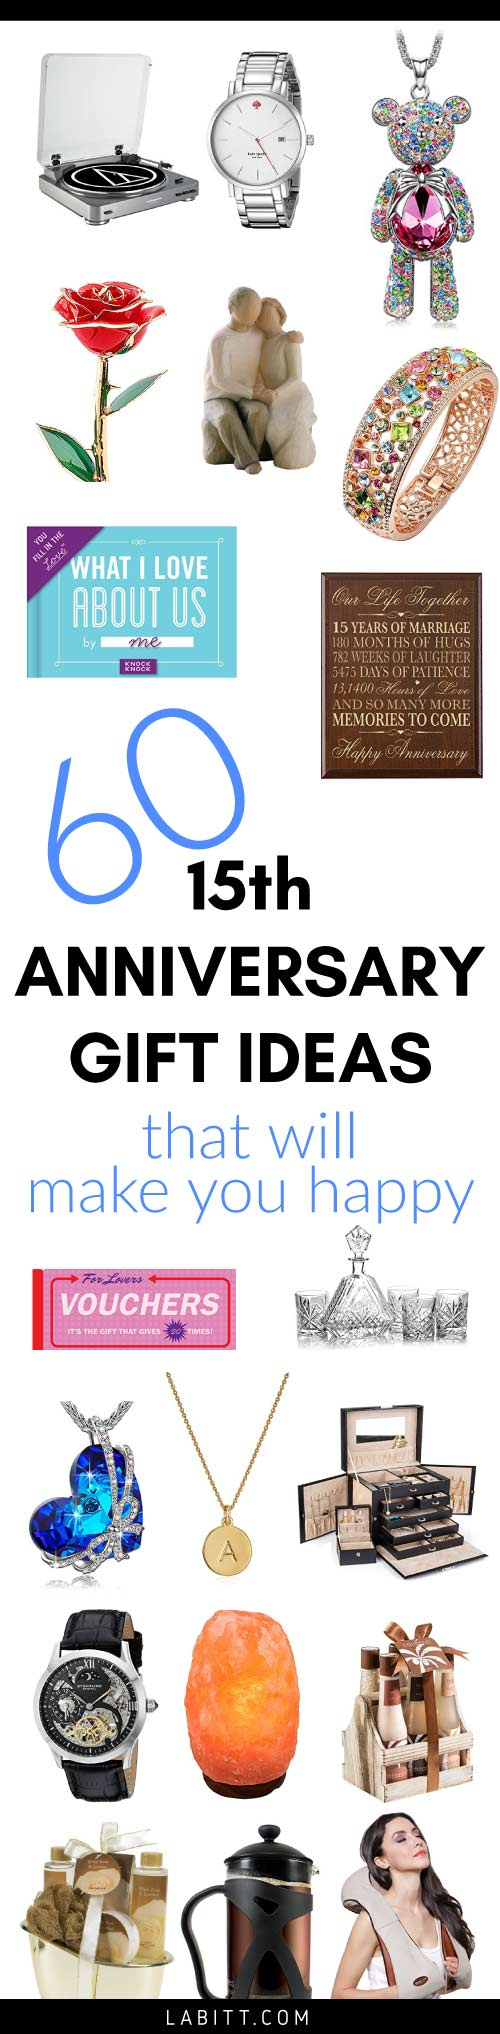 15th Year Wedding Anniversary Gift Ideas for Husband and Wife. Crystal and Sentimental Gifts for Him and for Her.